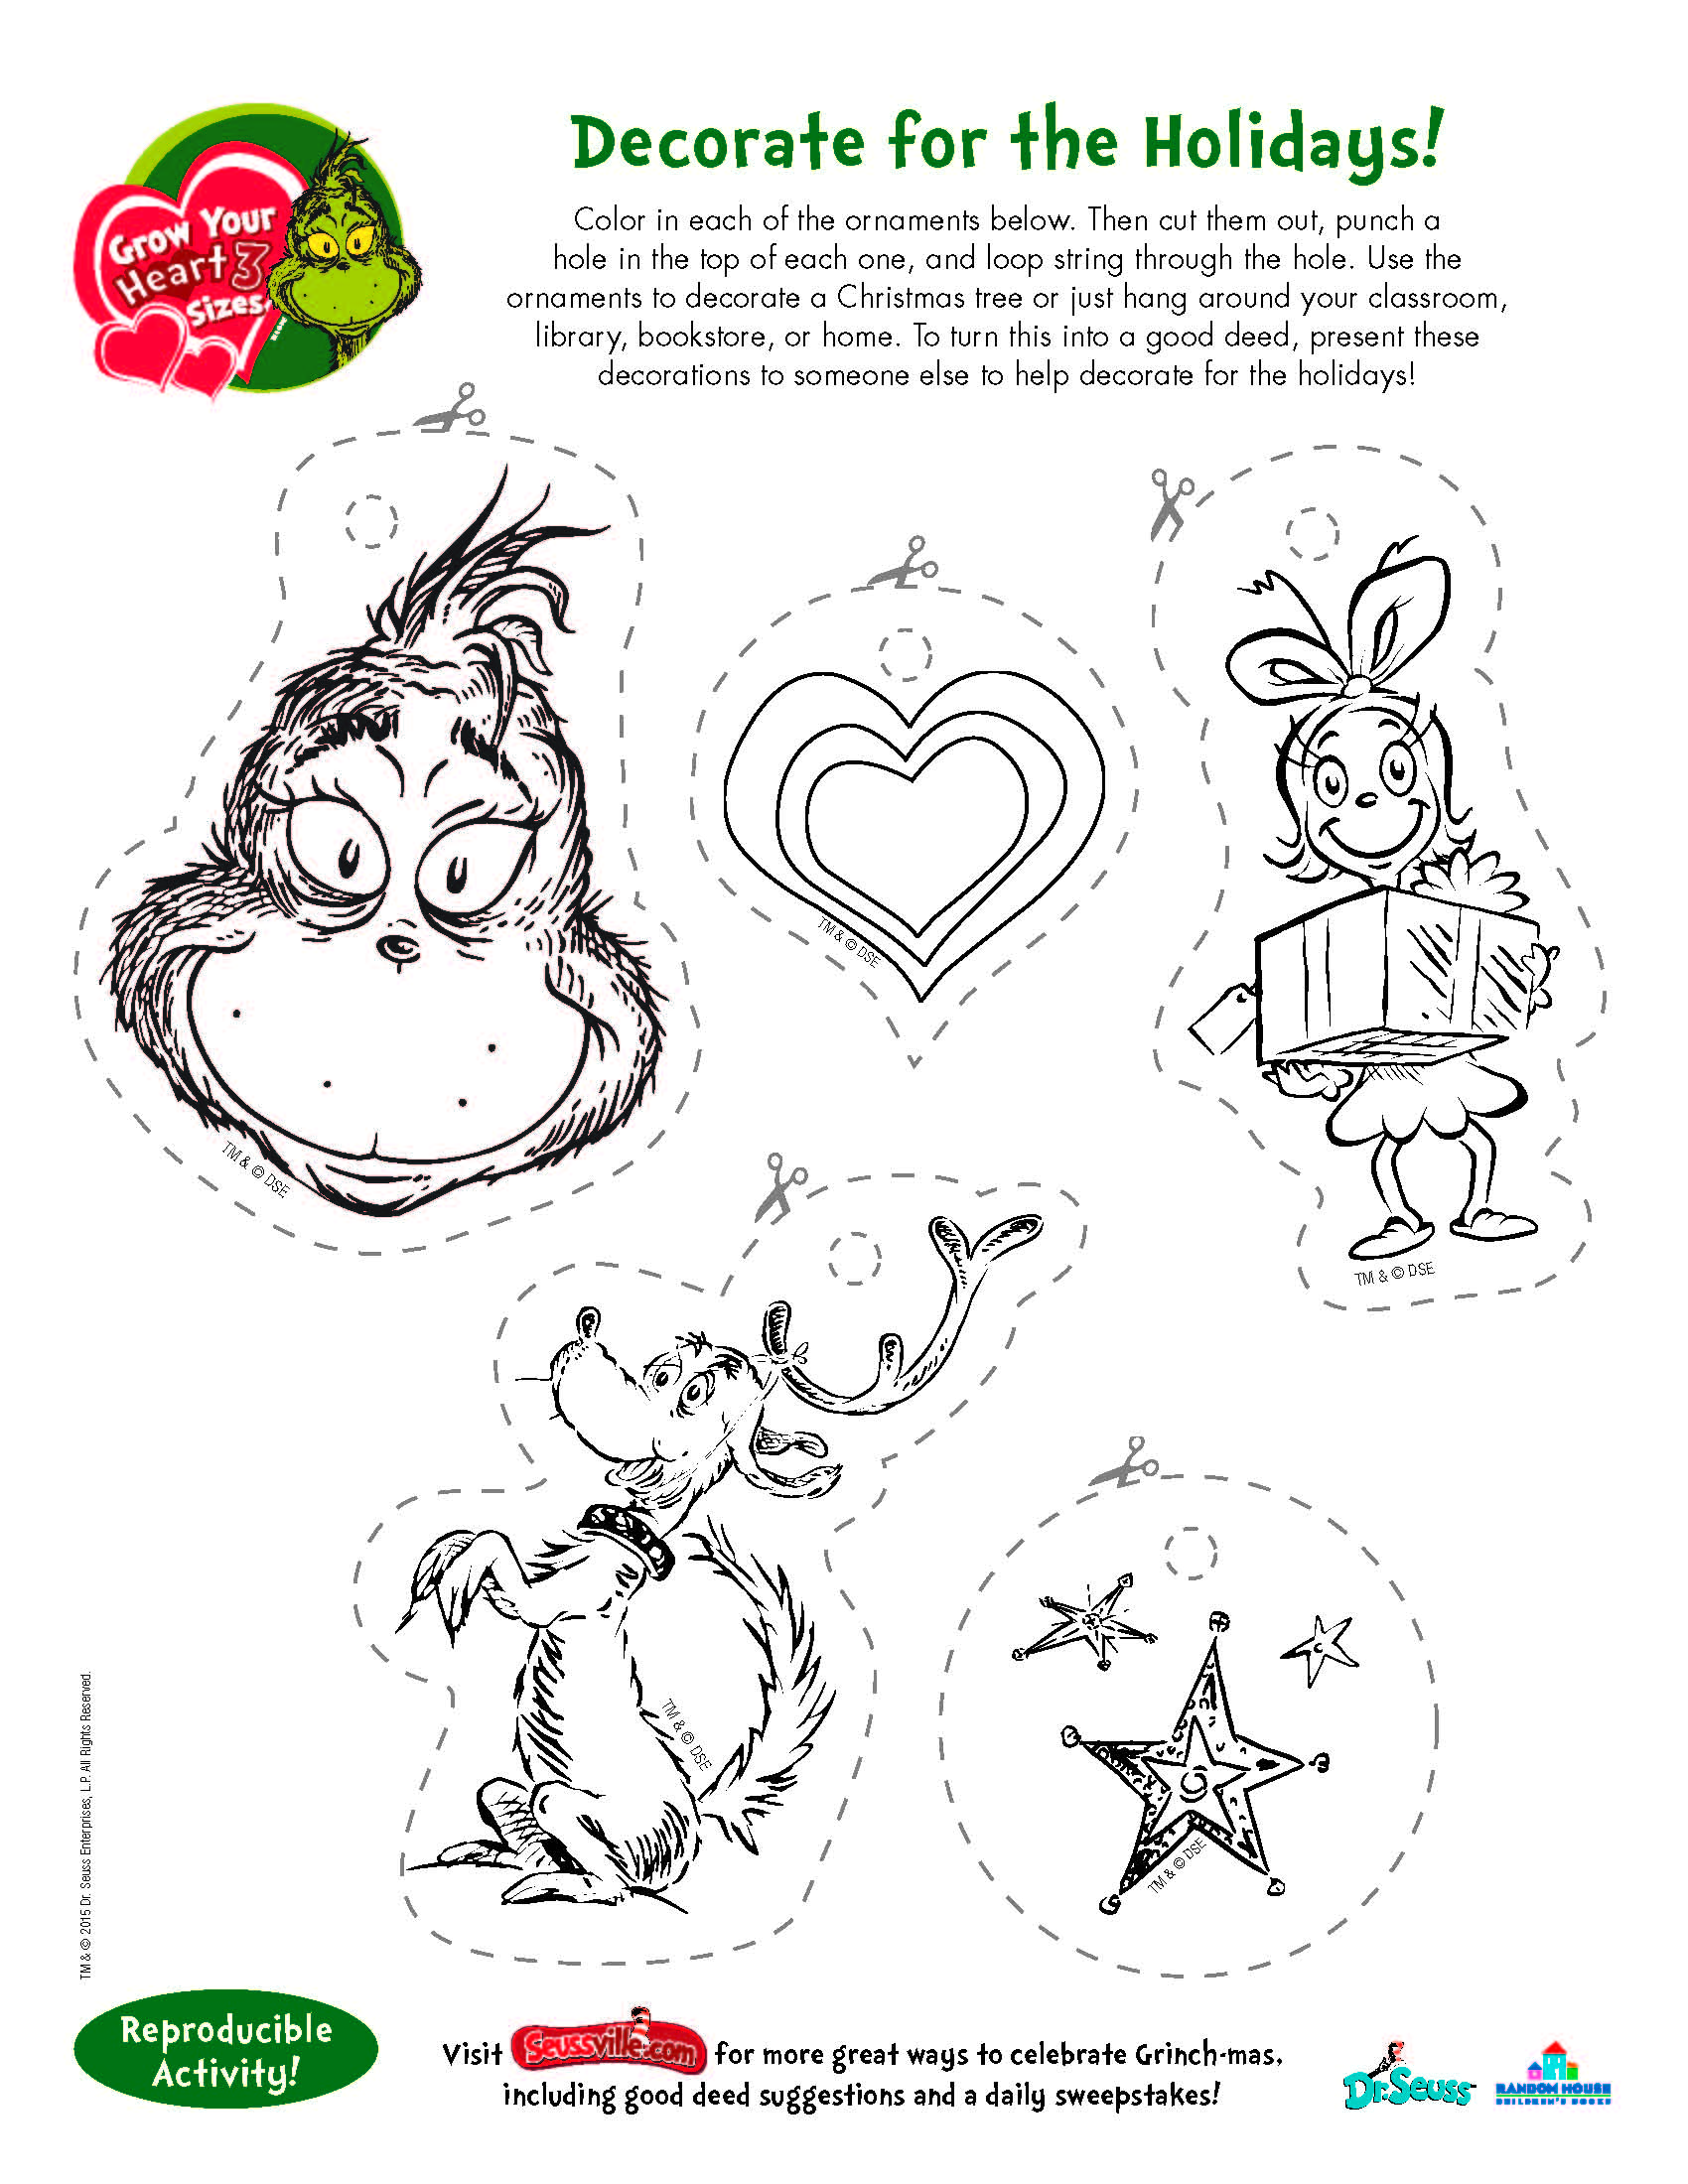 Uncategorized Printable Grinch free printables and wonderful activities from none other than the printable diy grinch ornaments page for kids to color